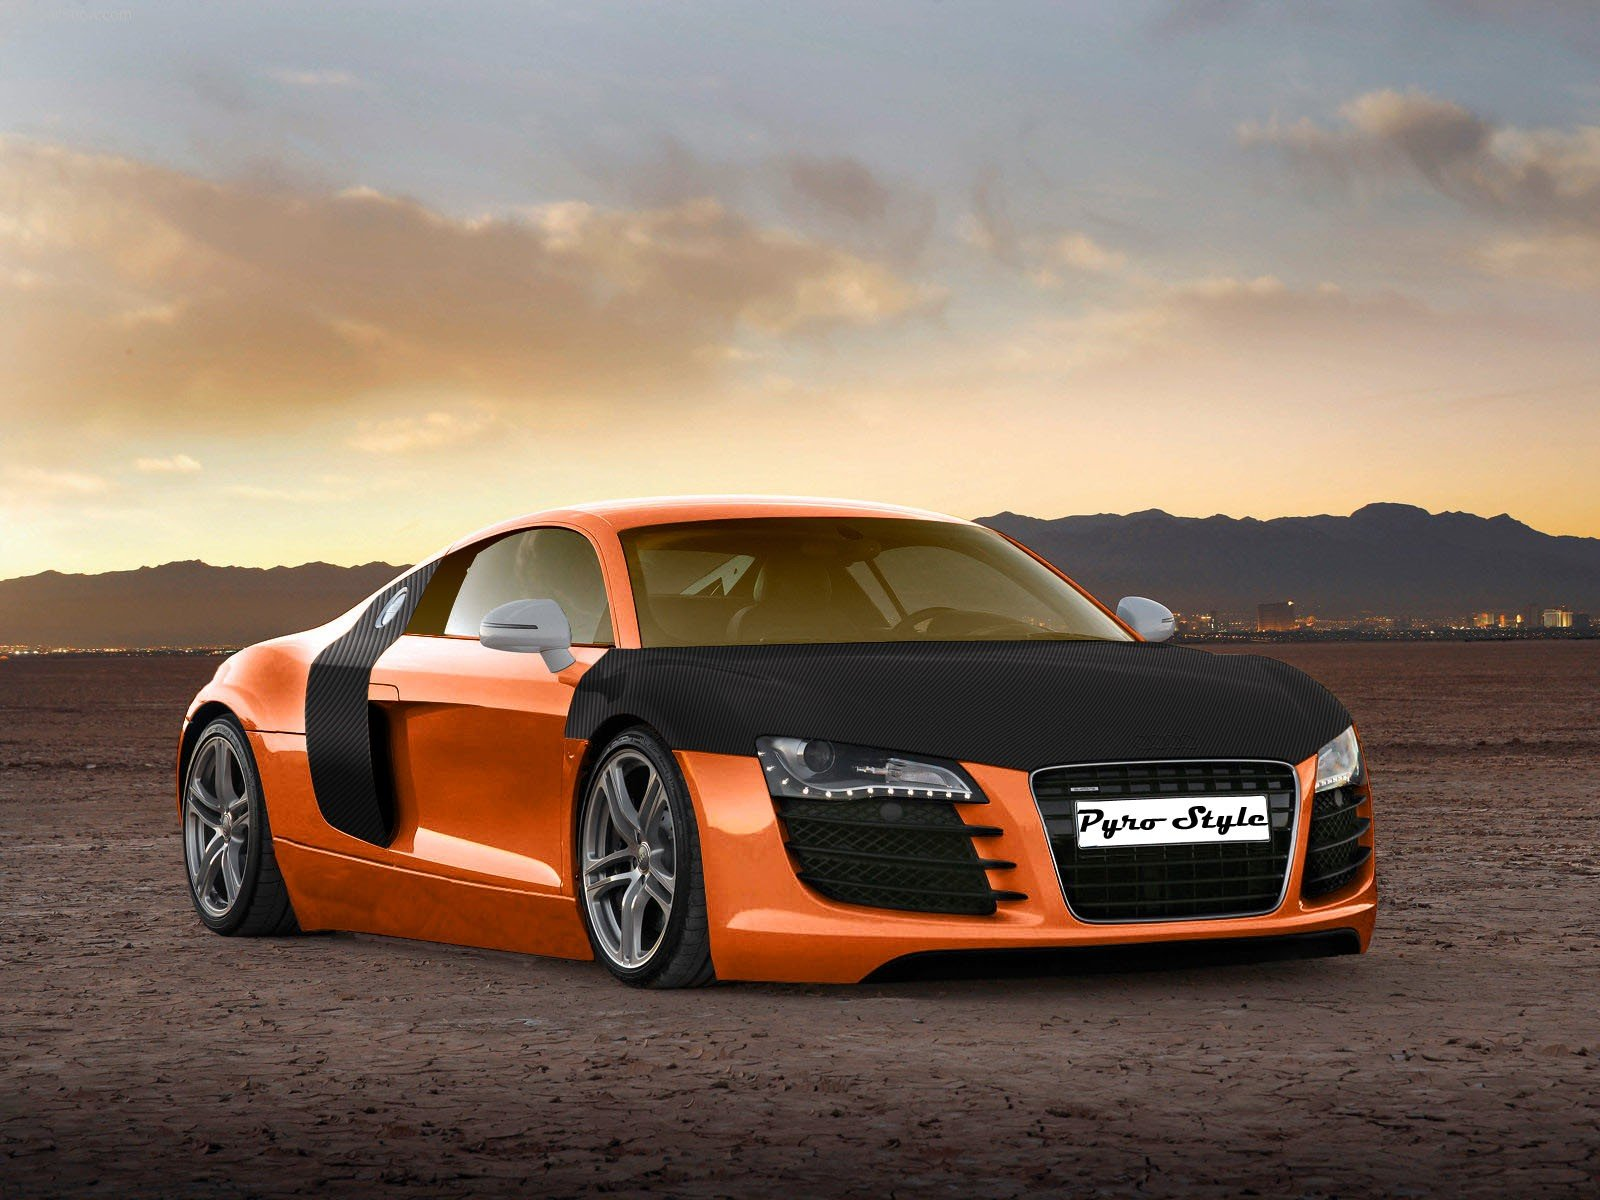 Latest Audi R8 Wallpaper Pictures Of Cars Hd Free Download